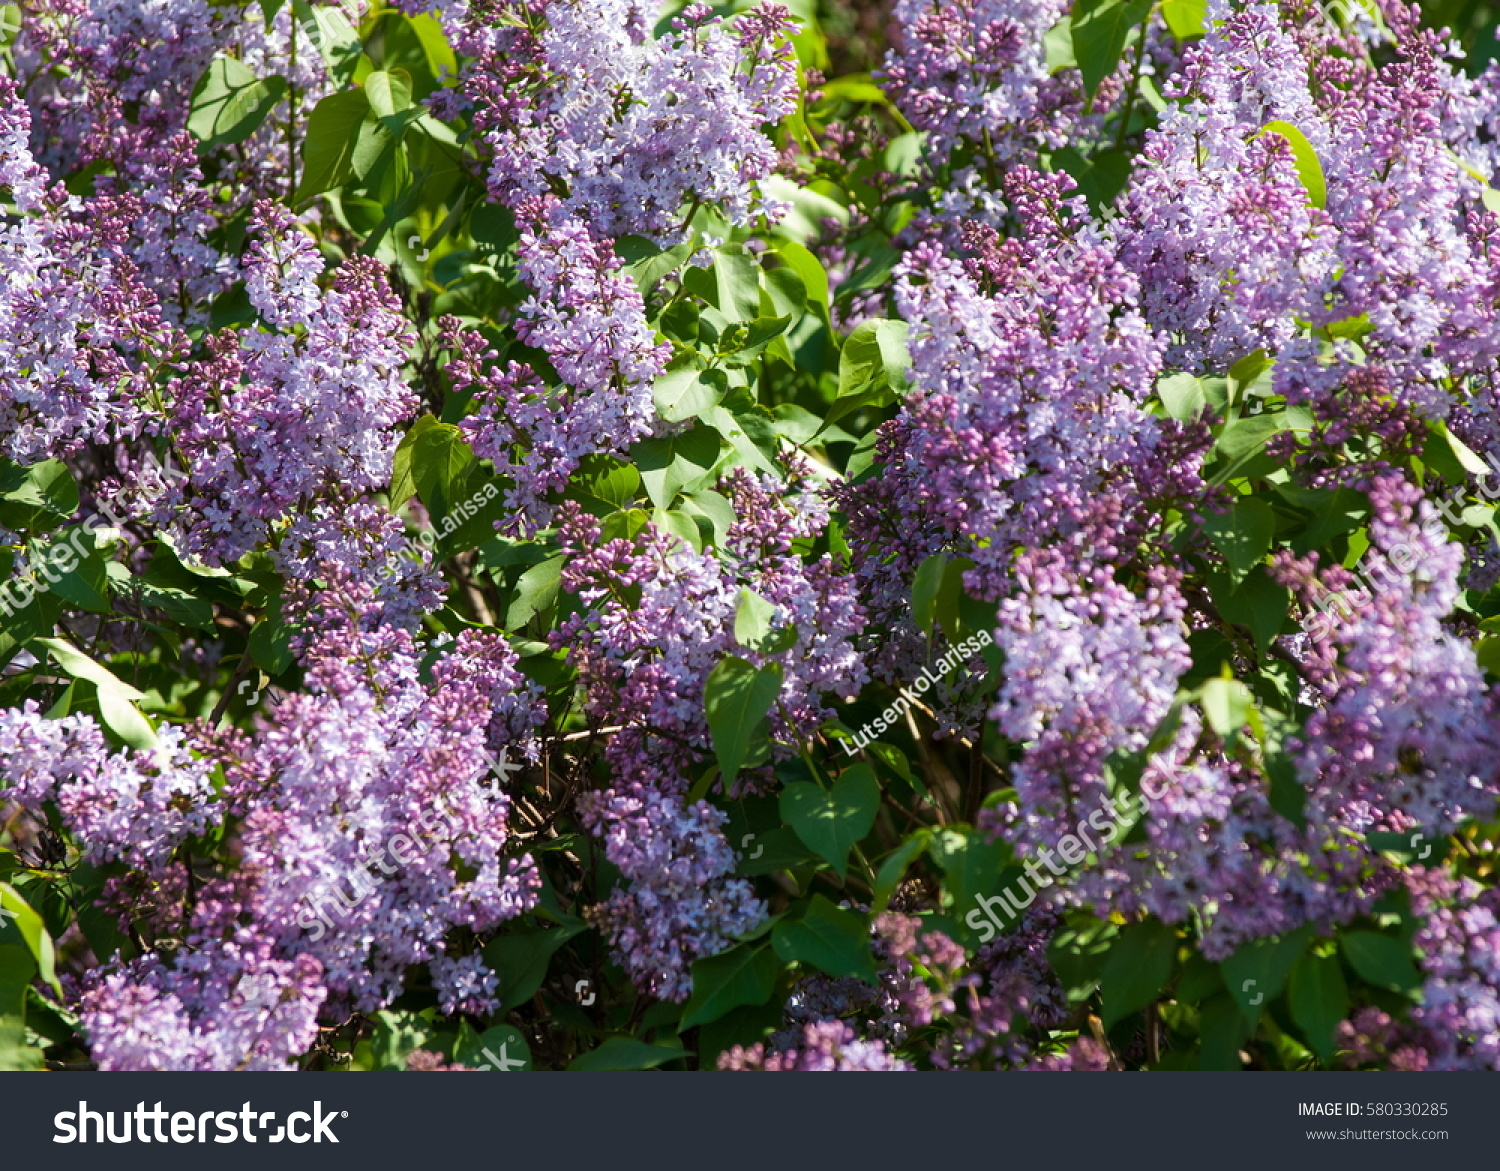 Texture Pattern Background Lilac Flowers Of A Pale Pinkish